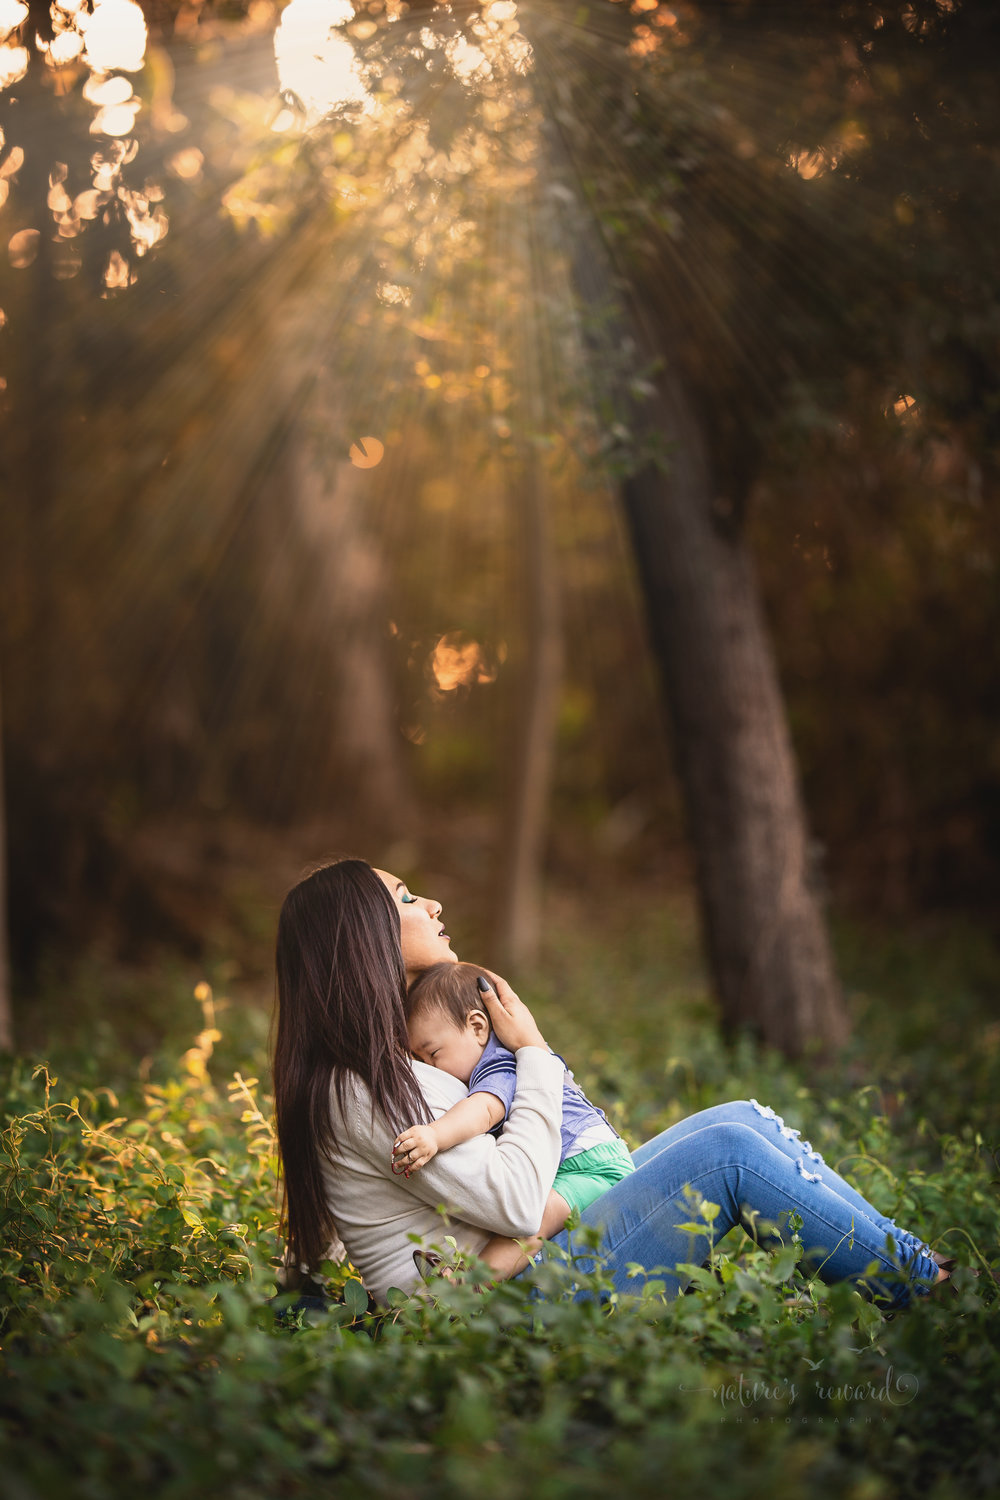 My Favorite Portrait From This Beautiful Session NbspMother And Son Cuddle In The